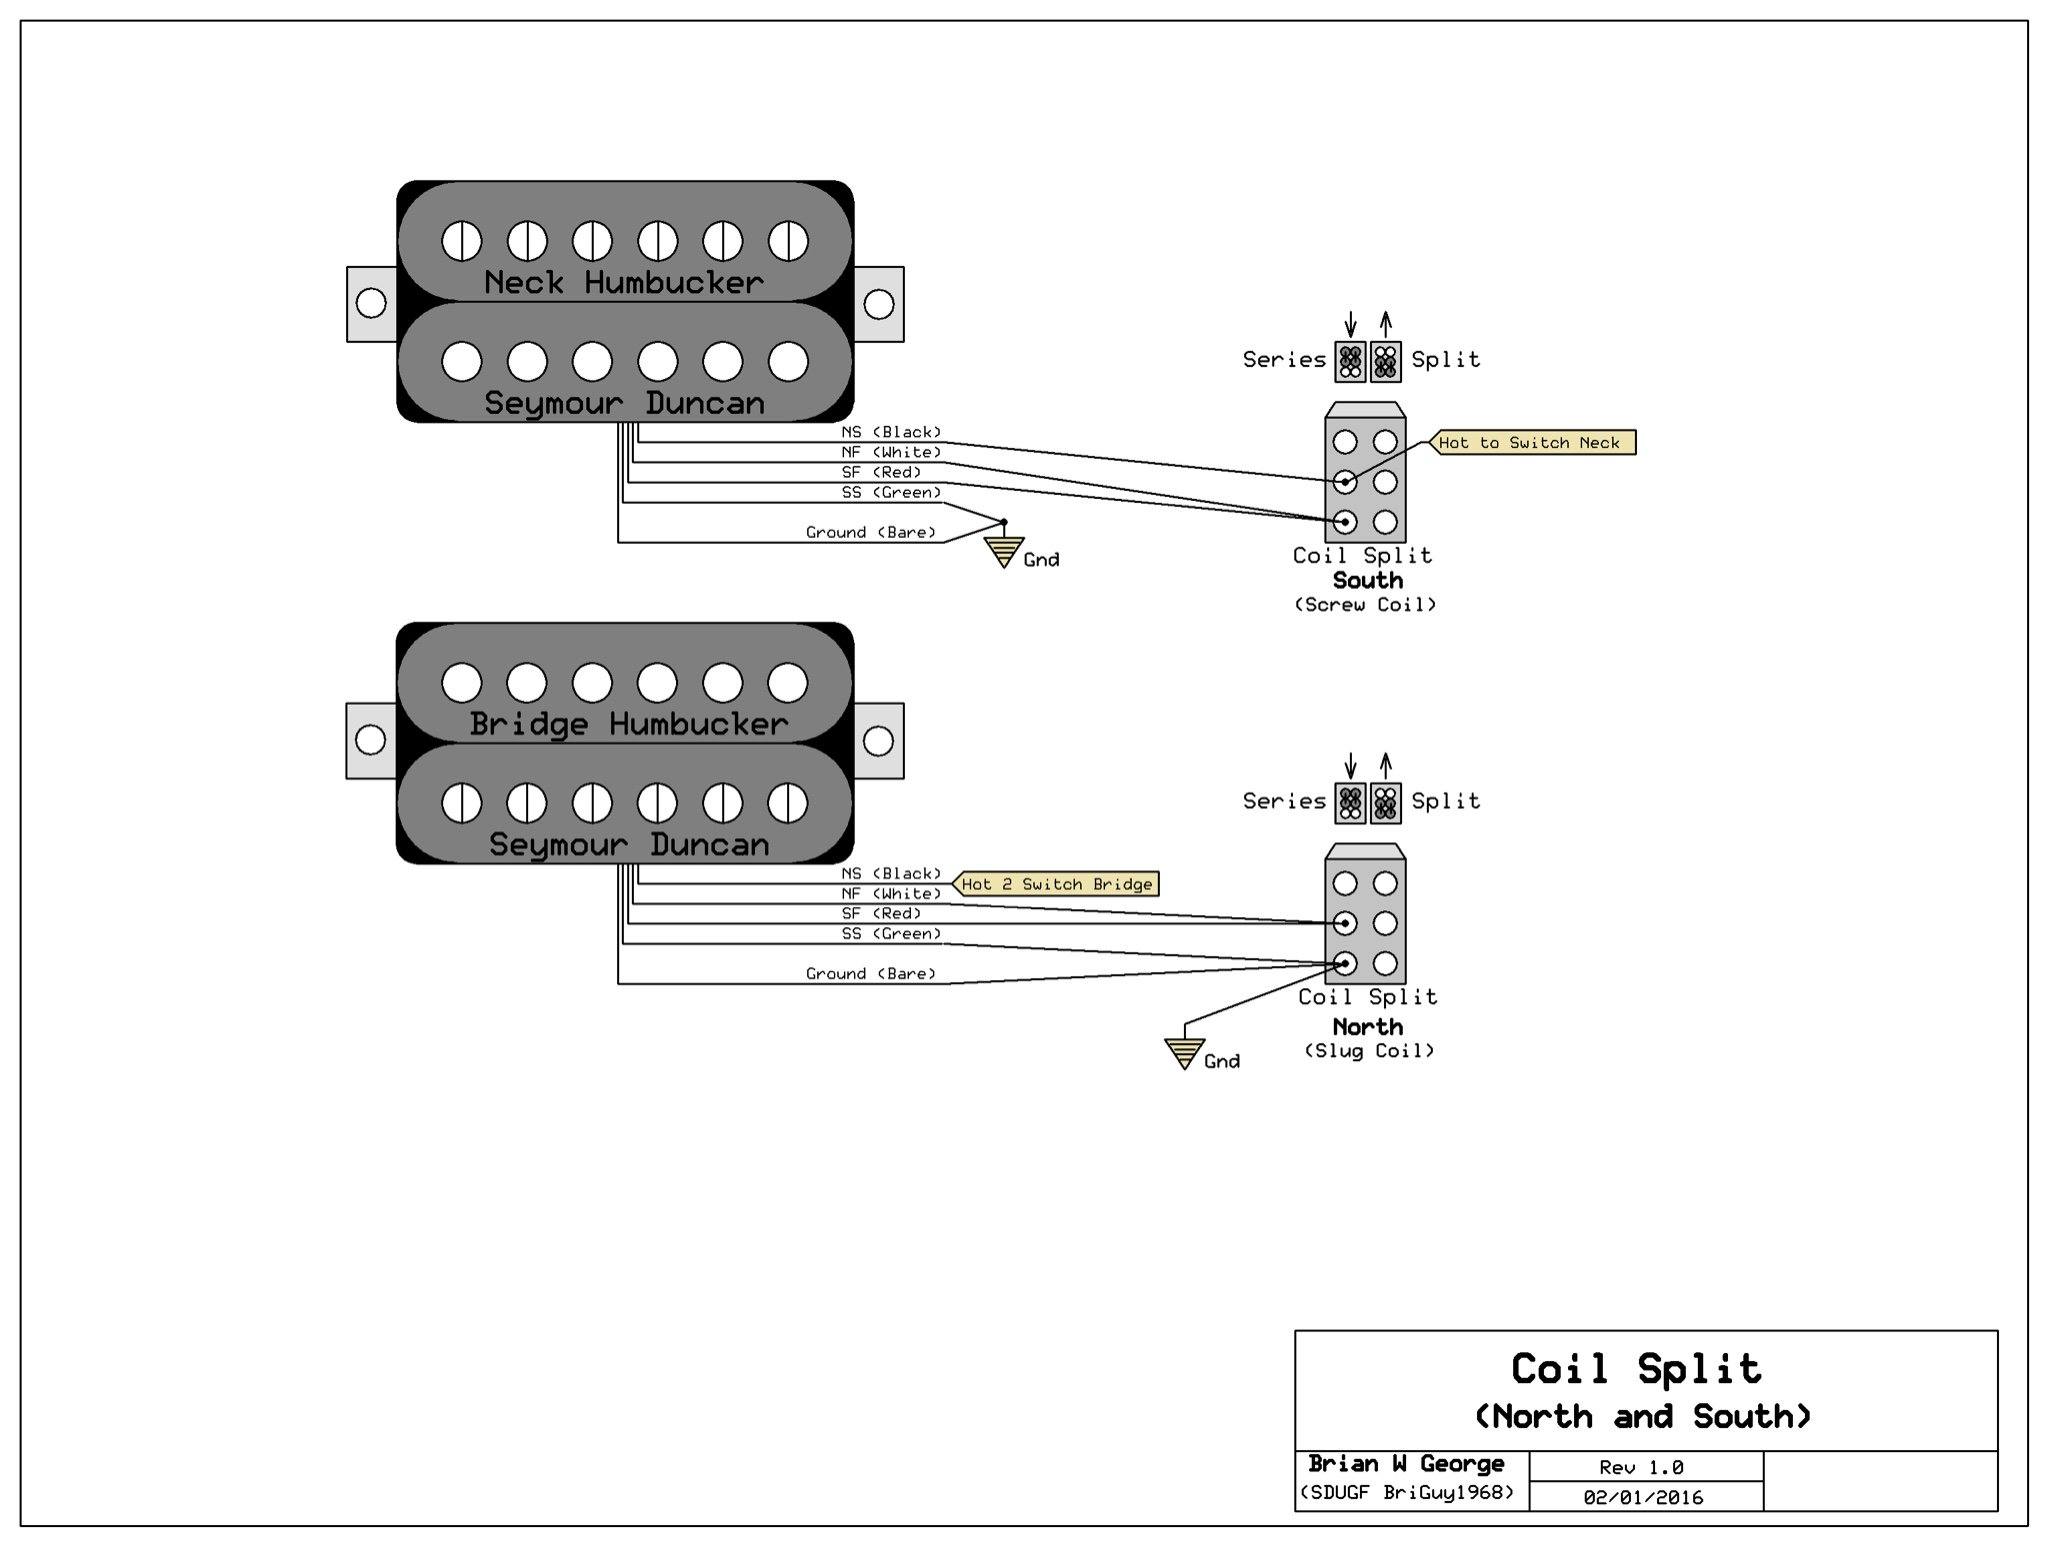 Swell Splitting 2 Three Wires Humbucker With One 2 Way Toggel Switch Wiring Cloud Hemtegremohammedshrineorg